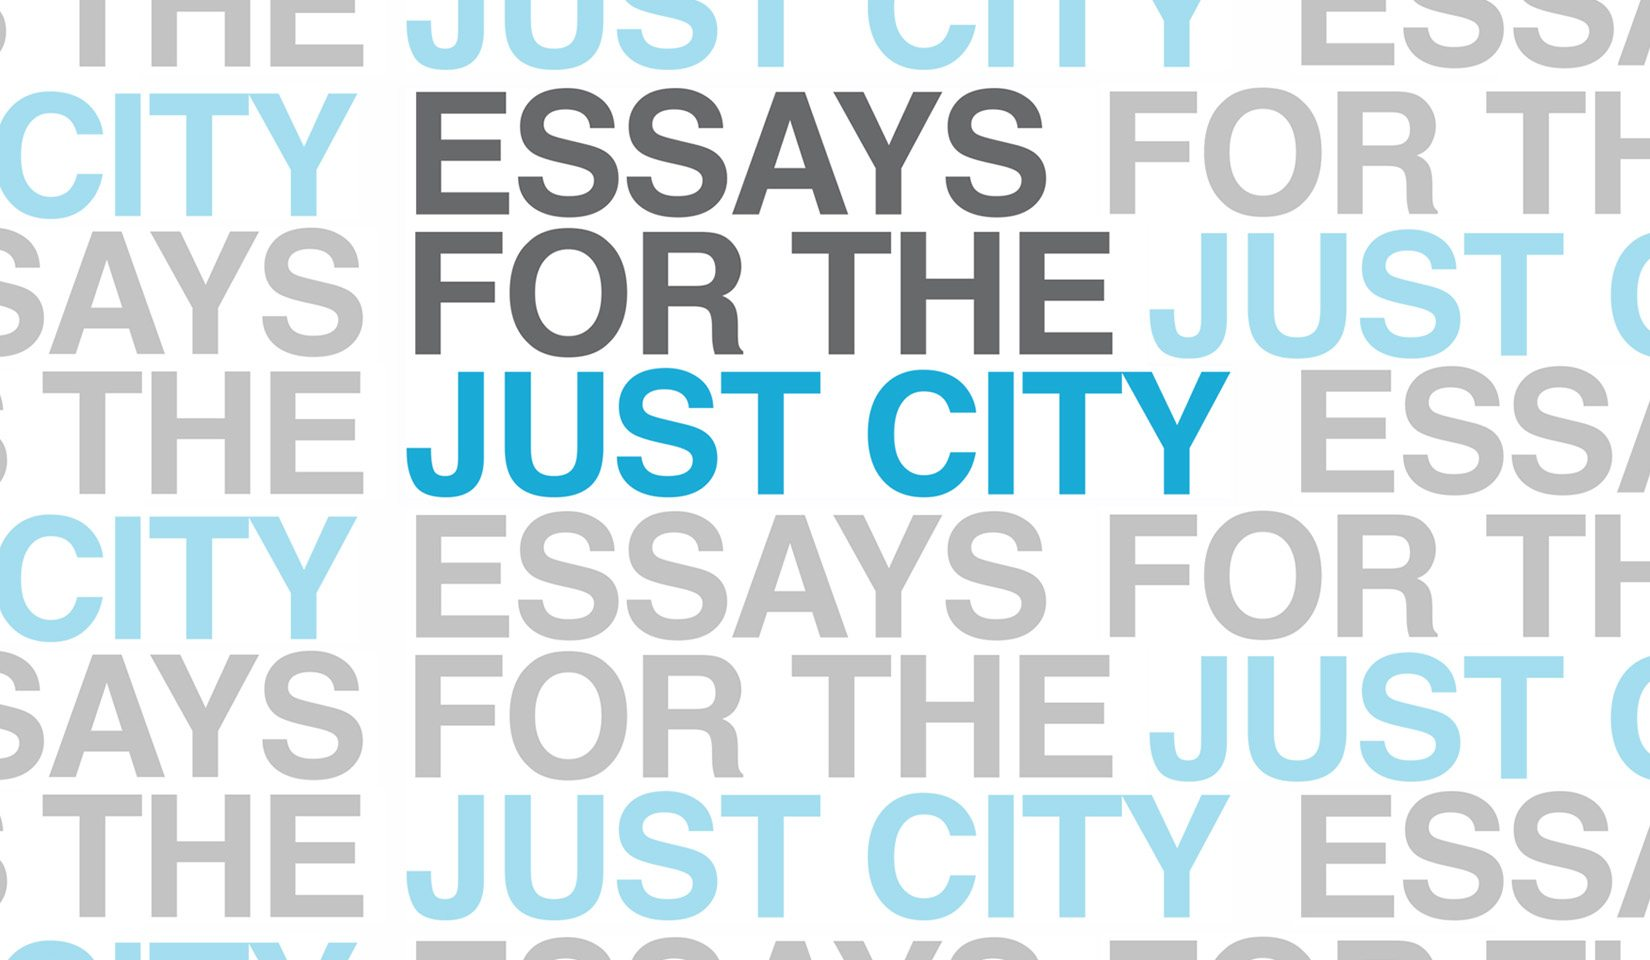 essay city or country Forum for essay writing for ielts  city or countryside - which is better for  by comparison with the country, living in the city in terms of facilities.